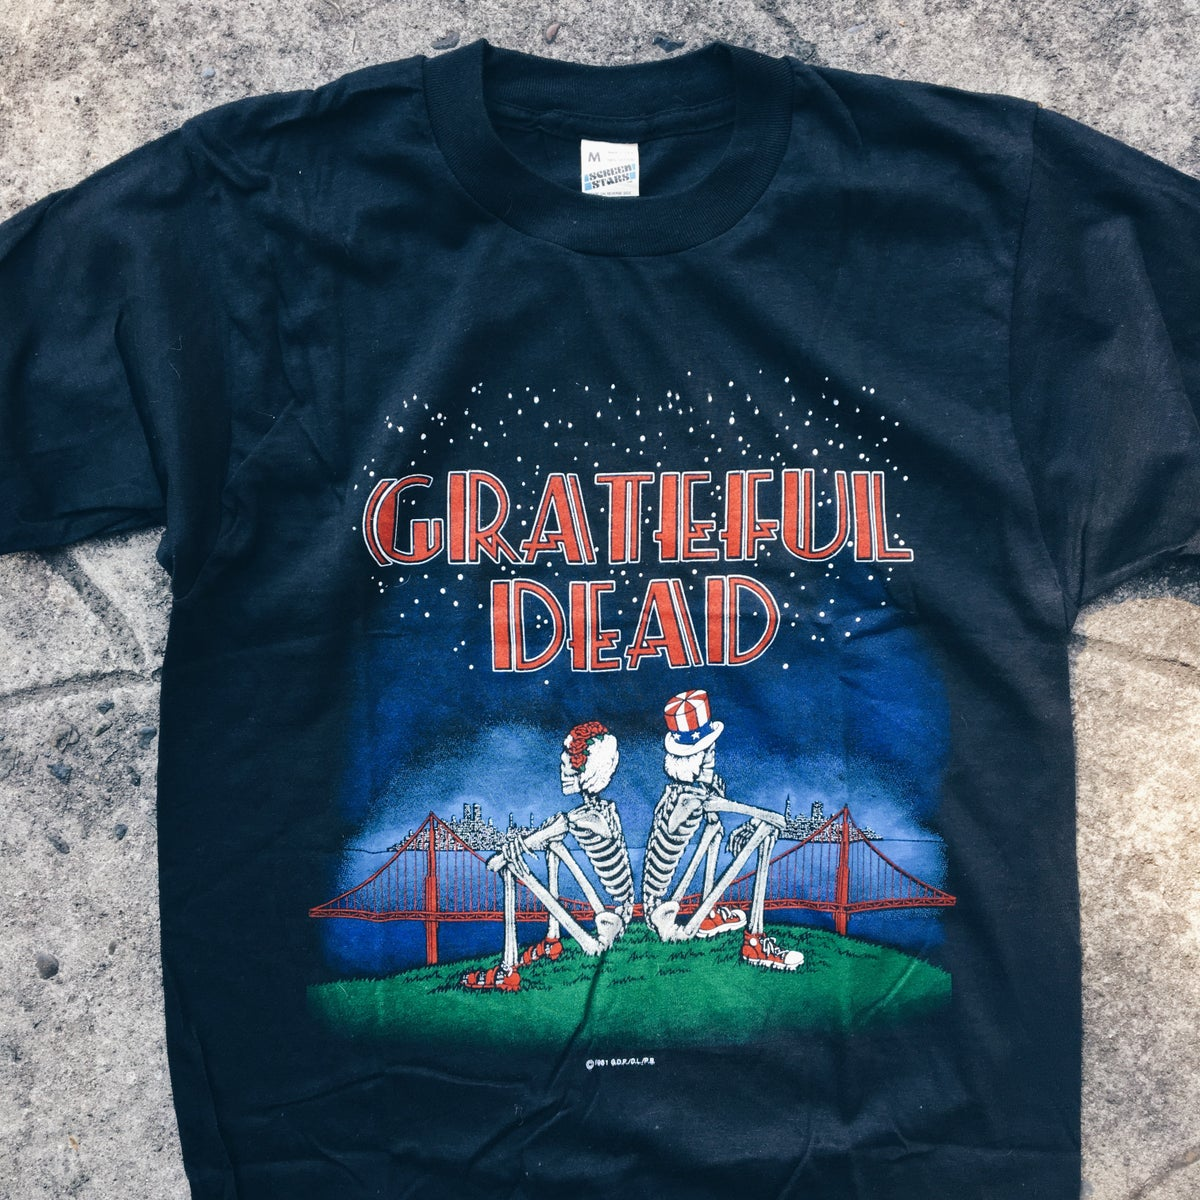 Image of Original 1981 Grateful Dead Tee.